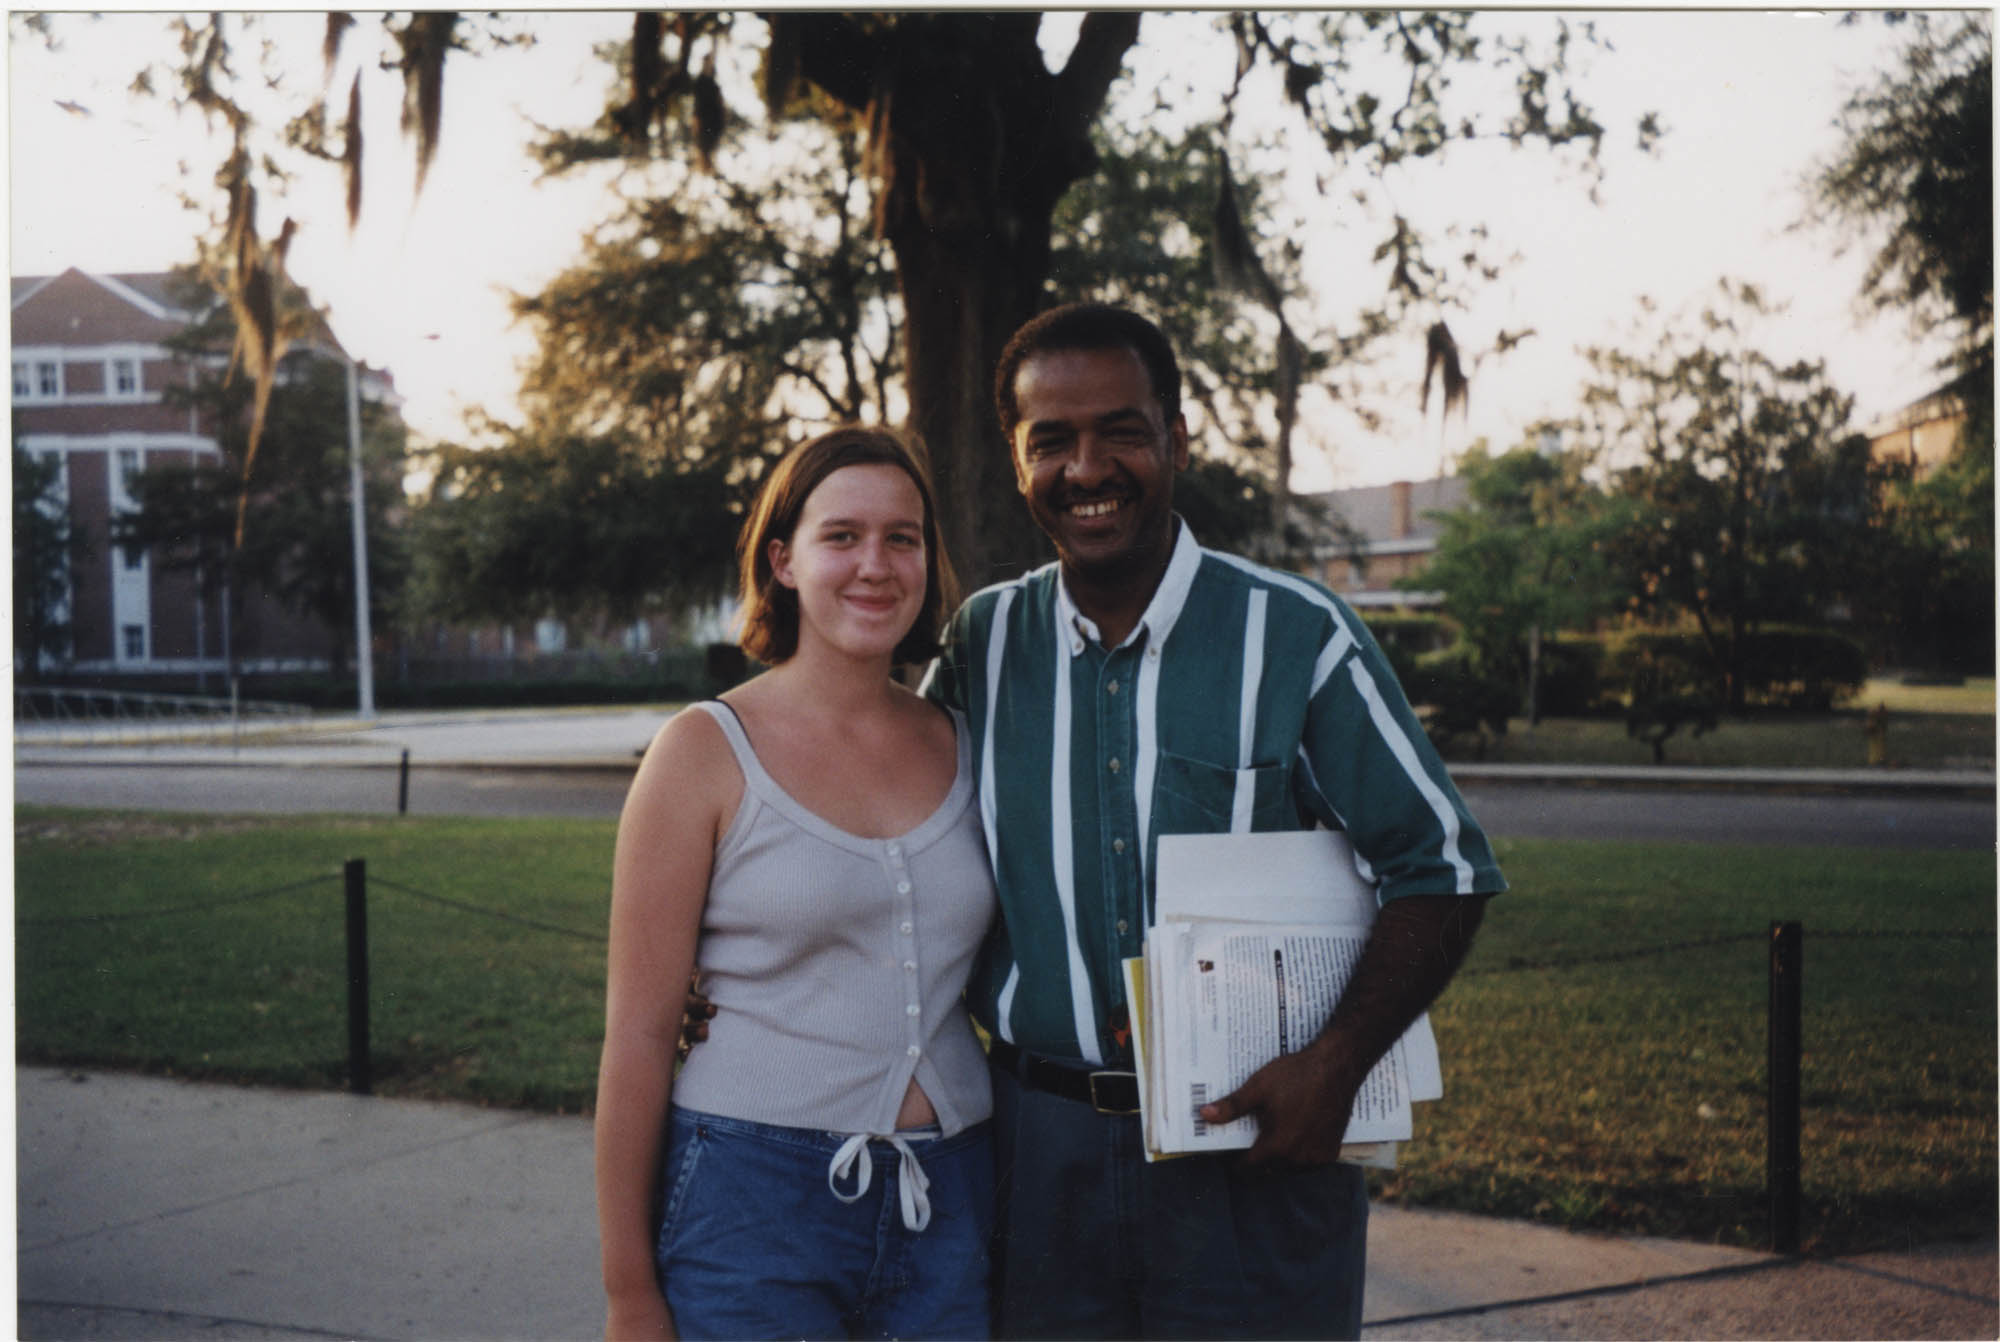 Photograph of Cleveland Sellers and Young Woman